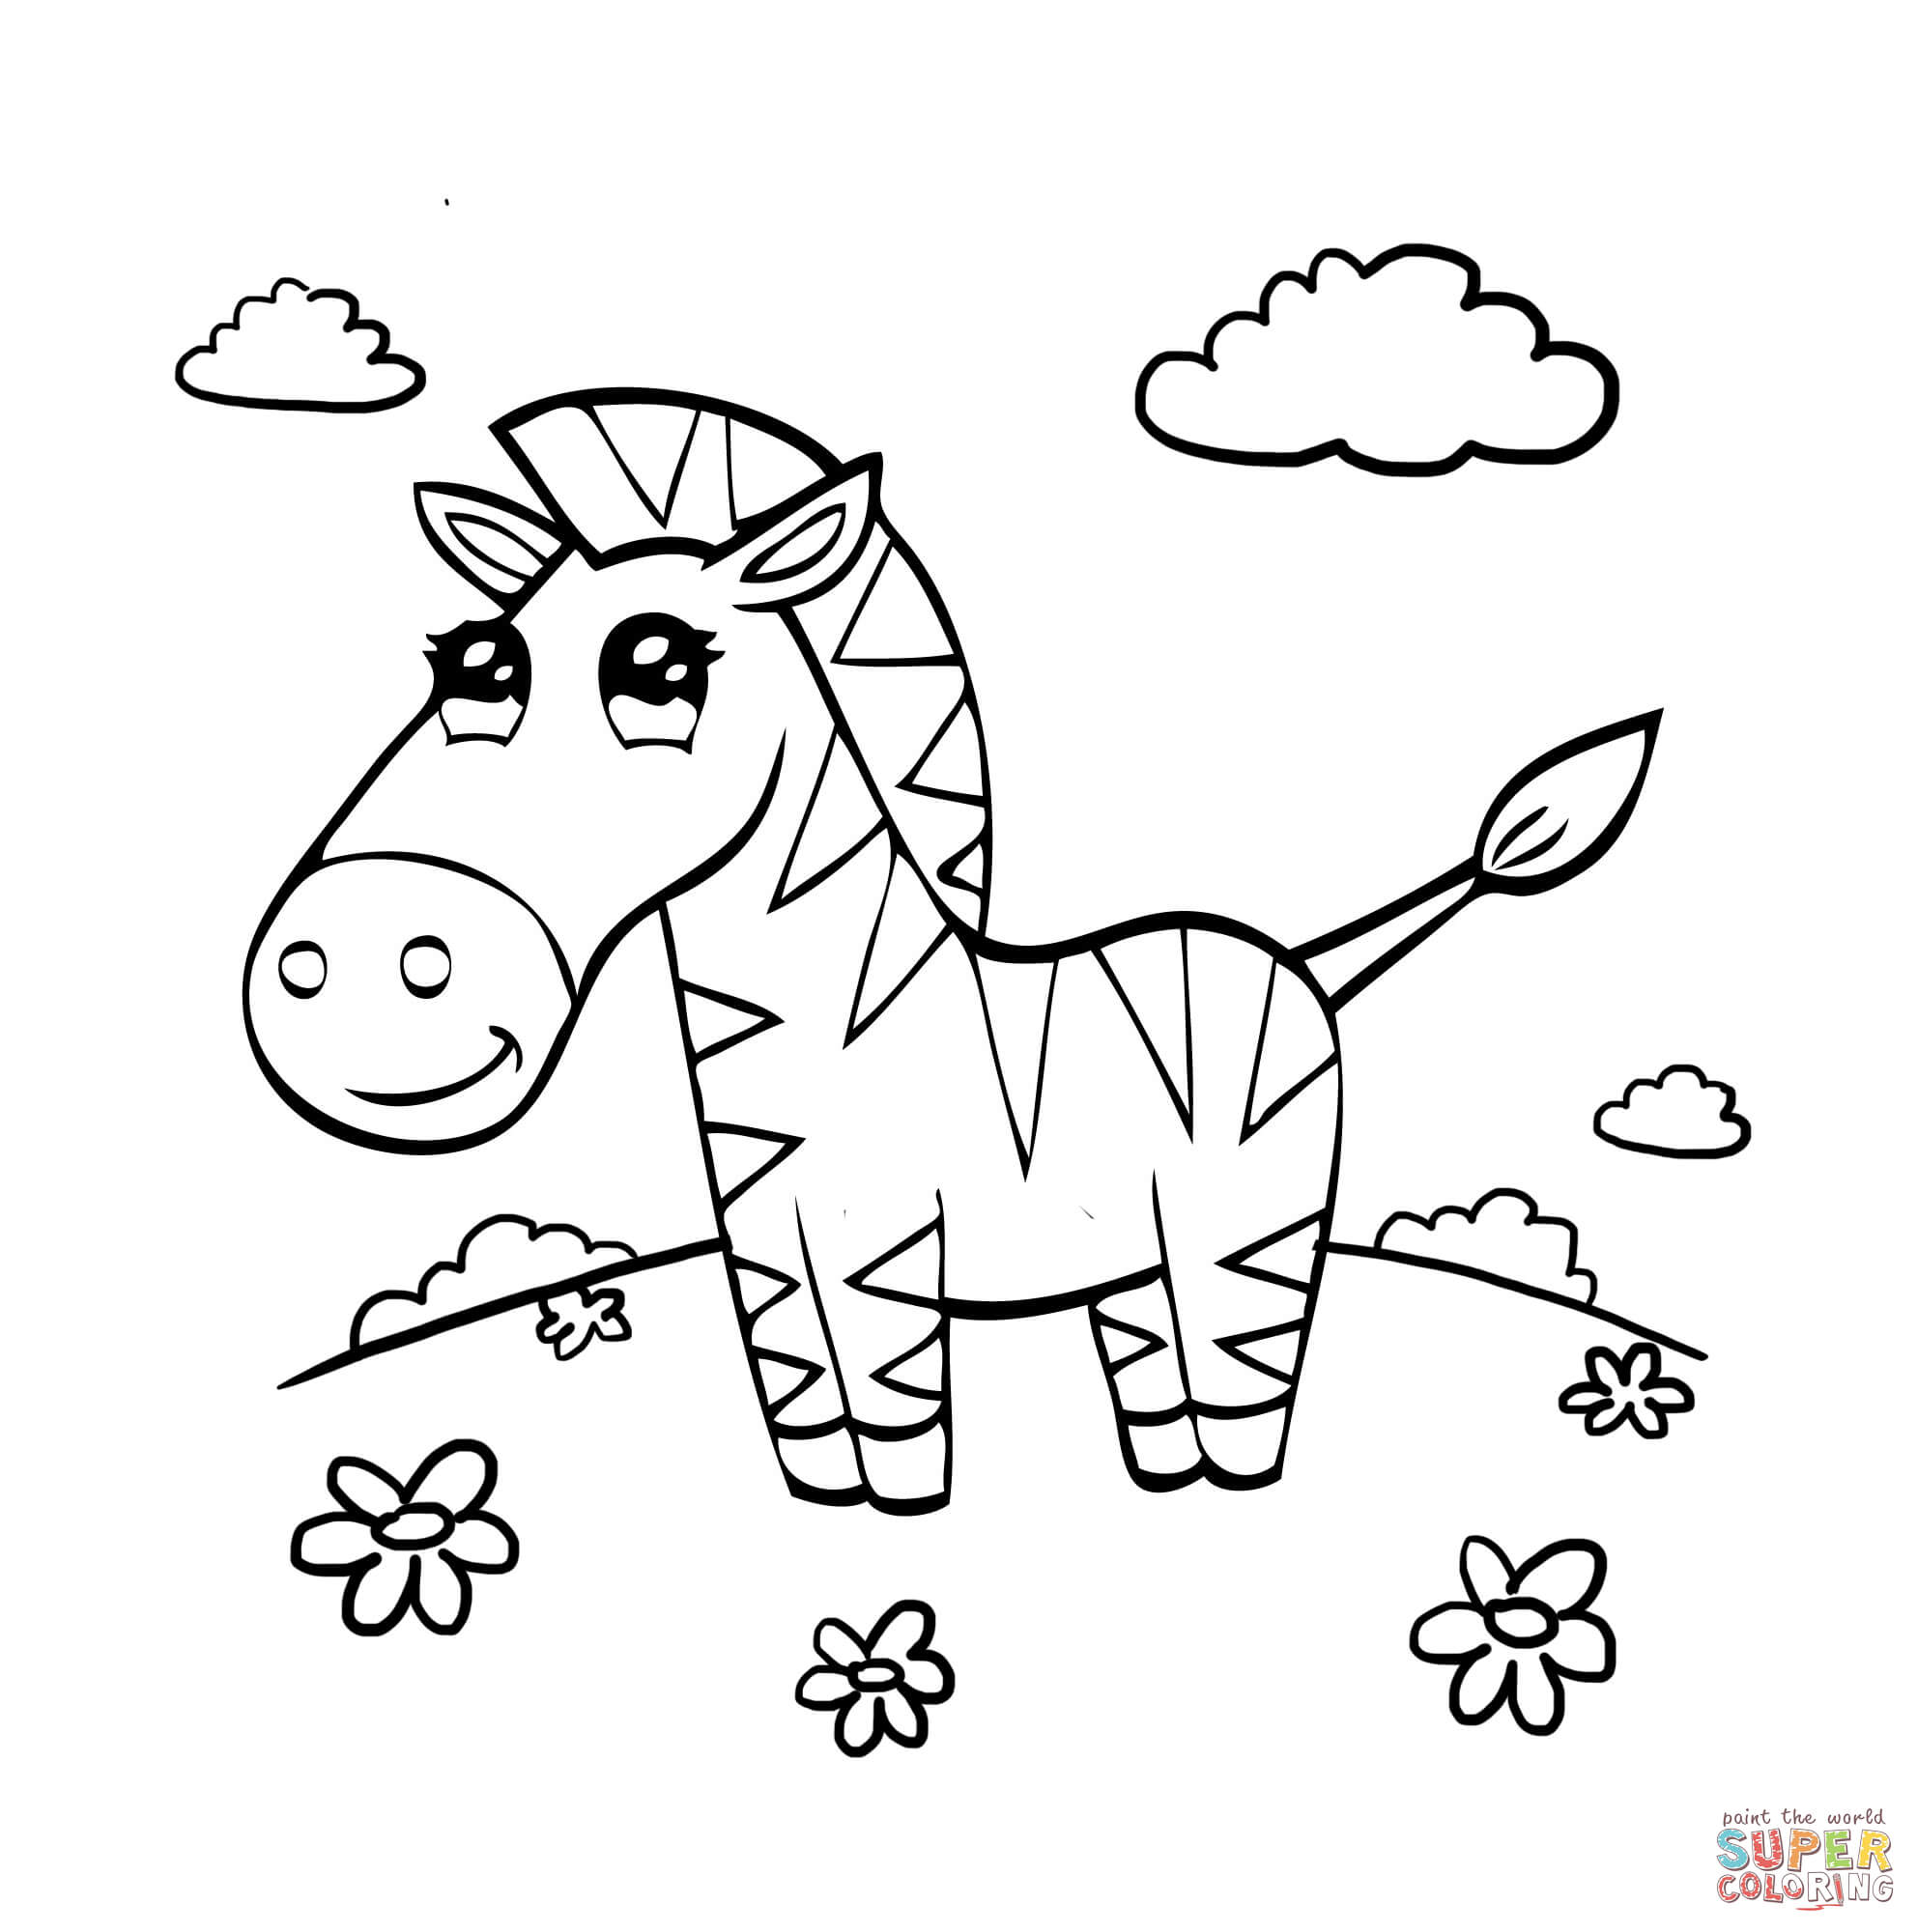 1984x2000 Cartoon Zebra Coloring Page Free Printable Coloring Pages